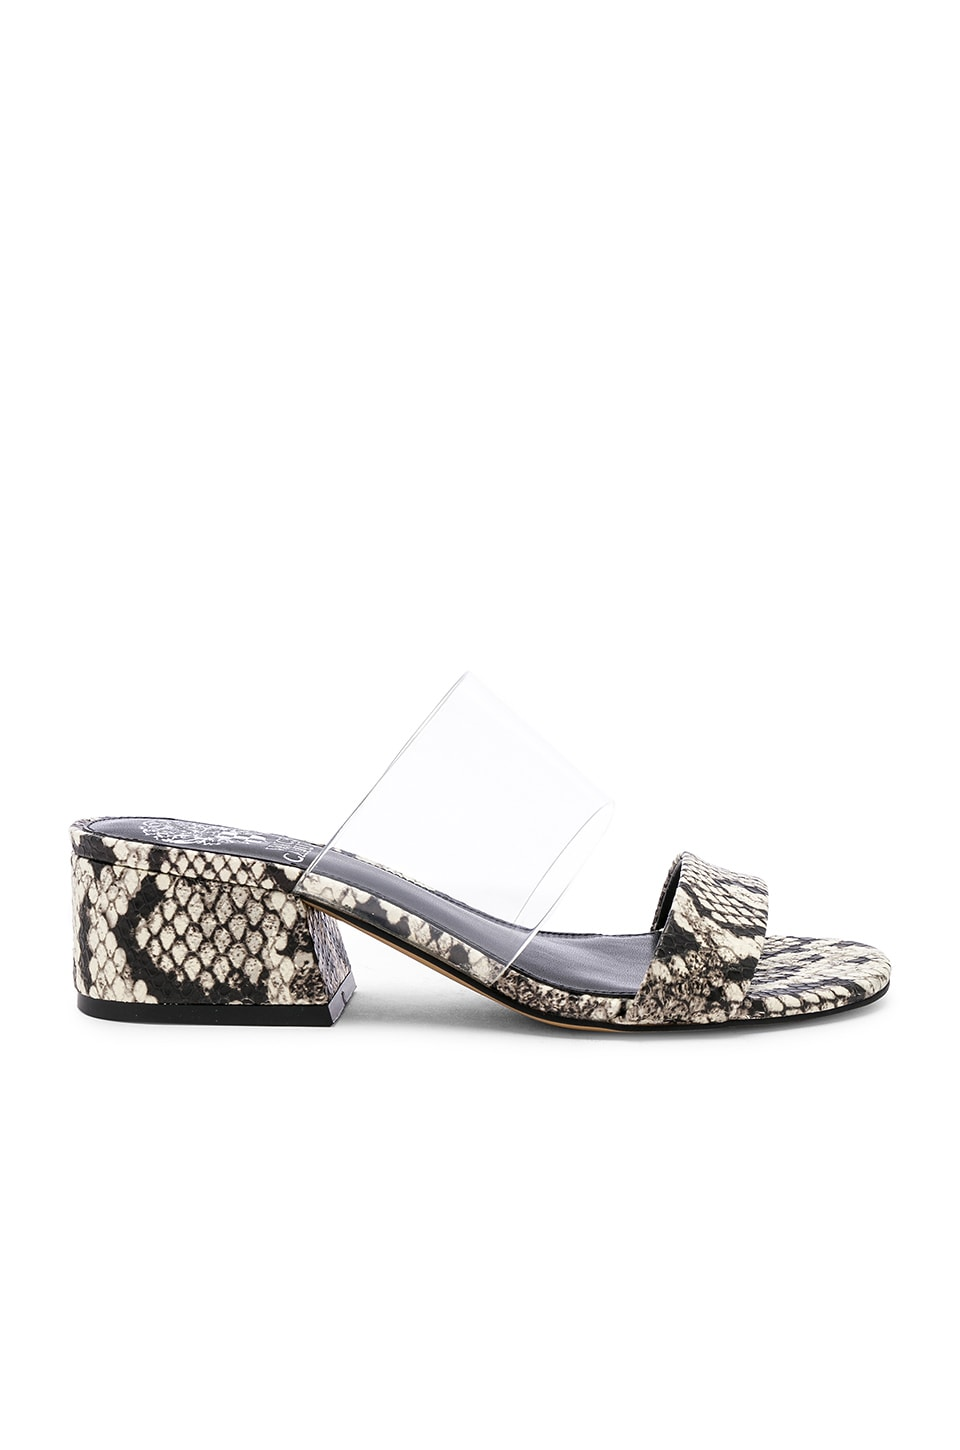 Vince Camuto Caveera Sandal in Clear, Black & White